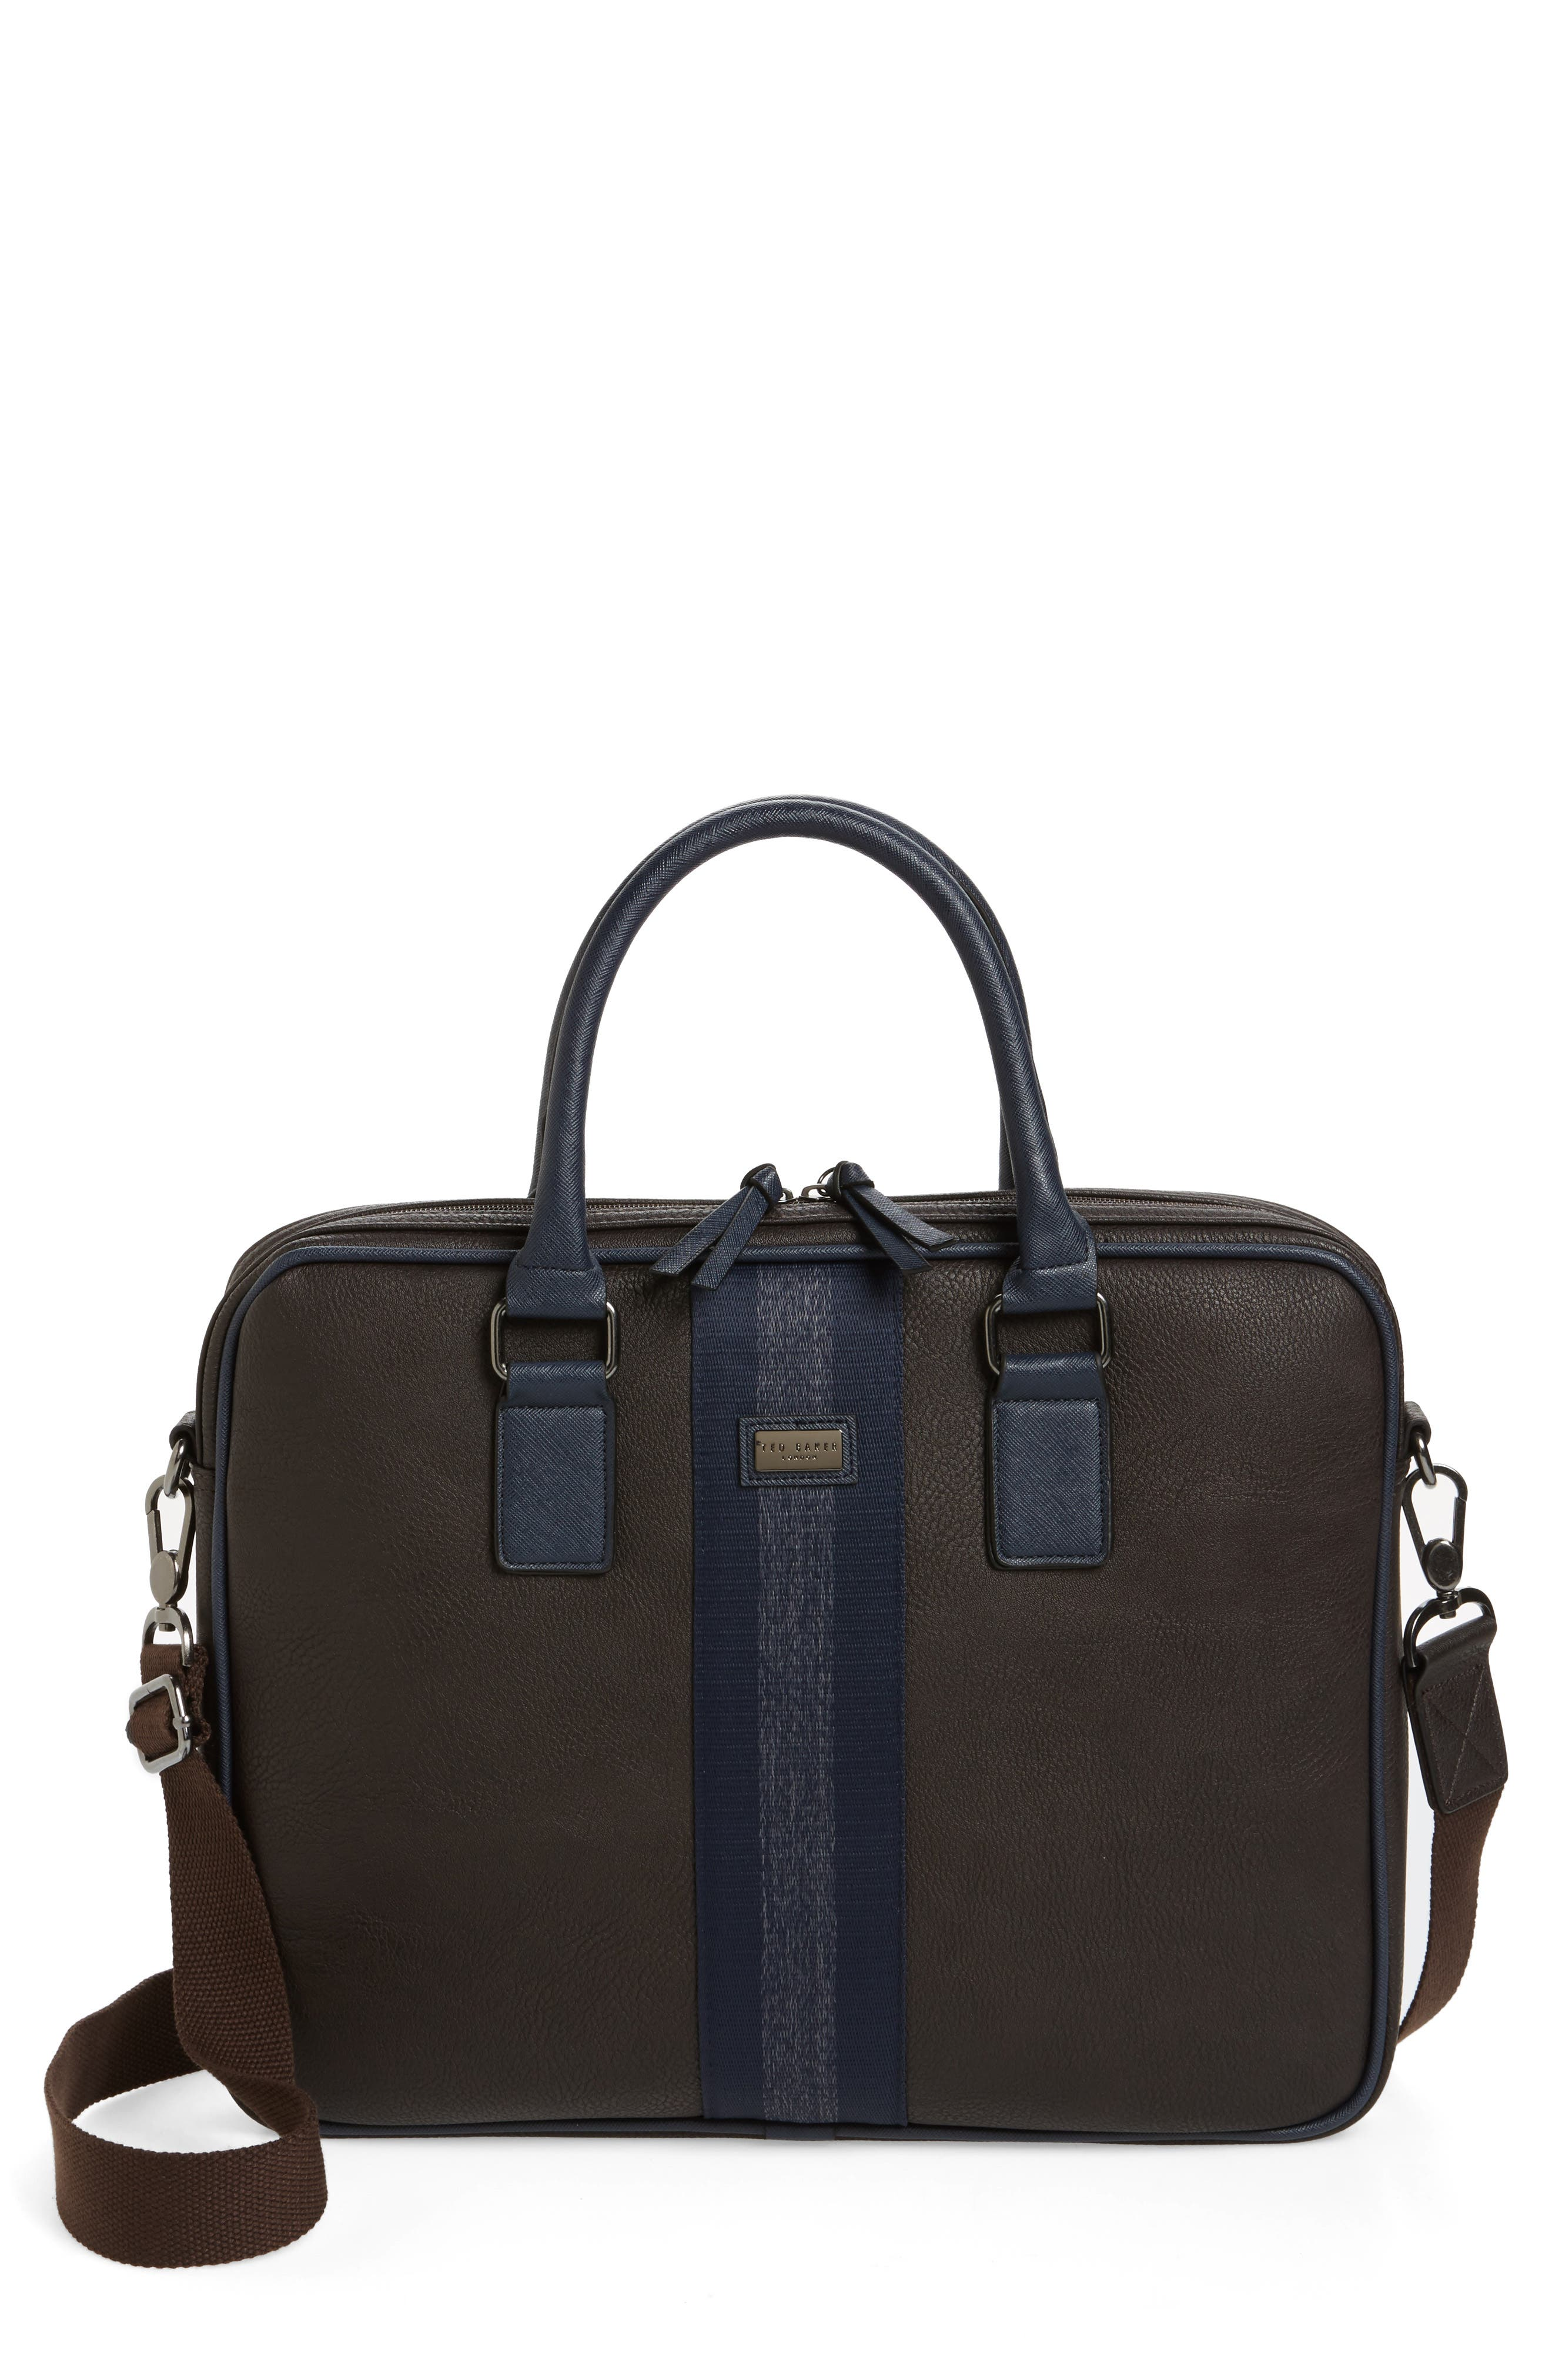 Slivain Briefcase,                             Main thumbnail 1, color,                             Chocolate